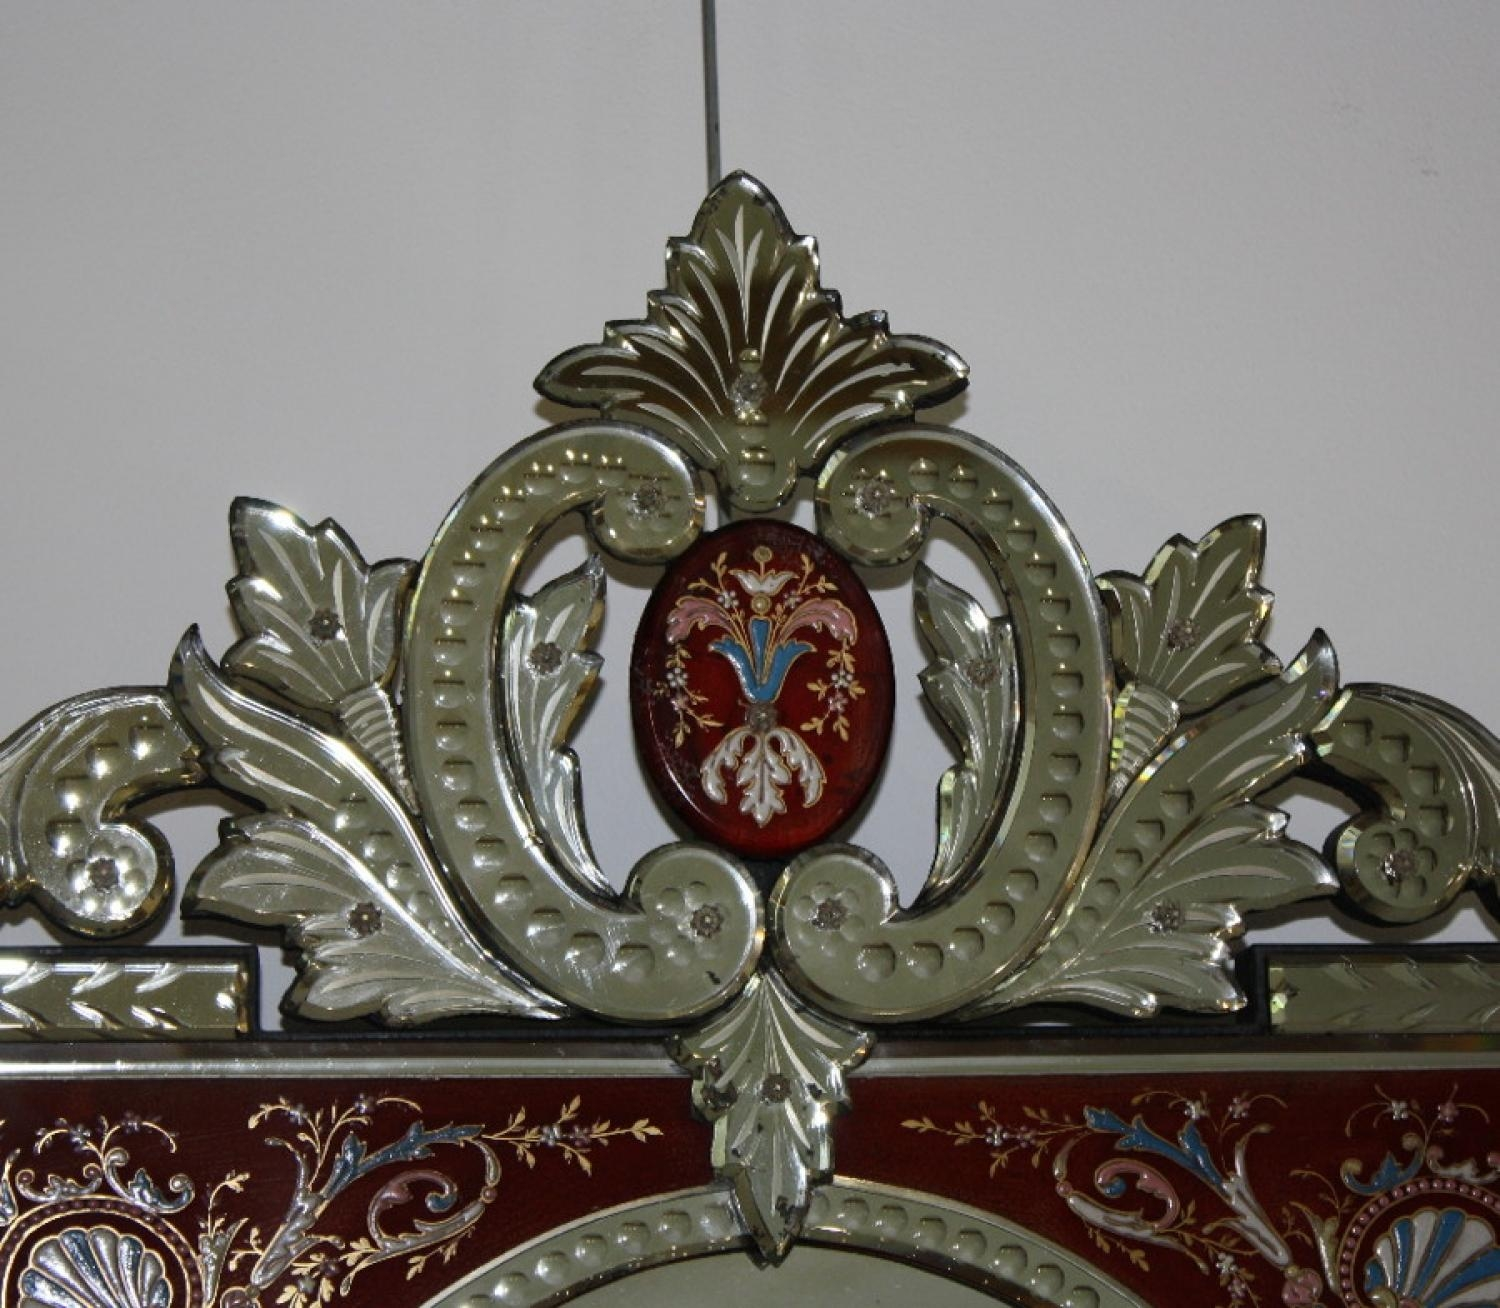 Rare Red Framed Antique Venetian Mirror Pertaining To Venetian Mirrors Antique (Image 17 of 20)